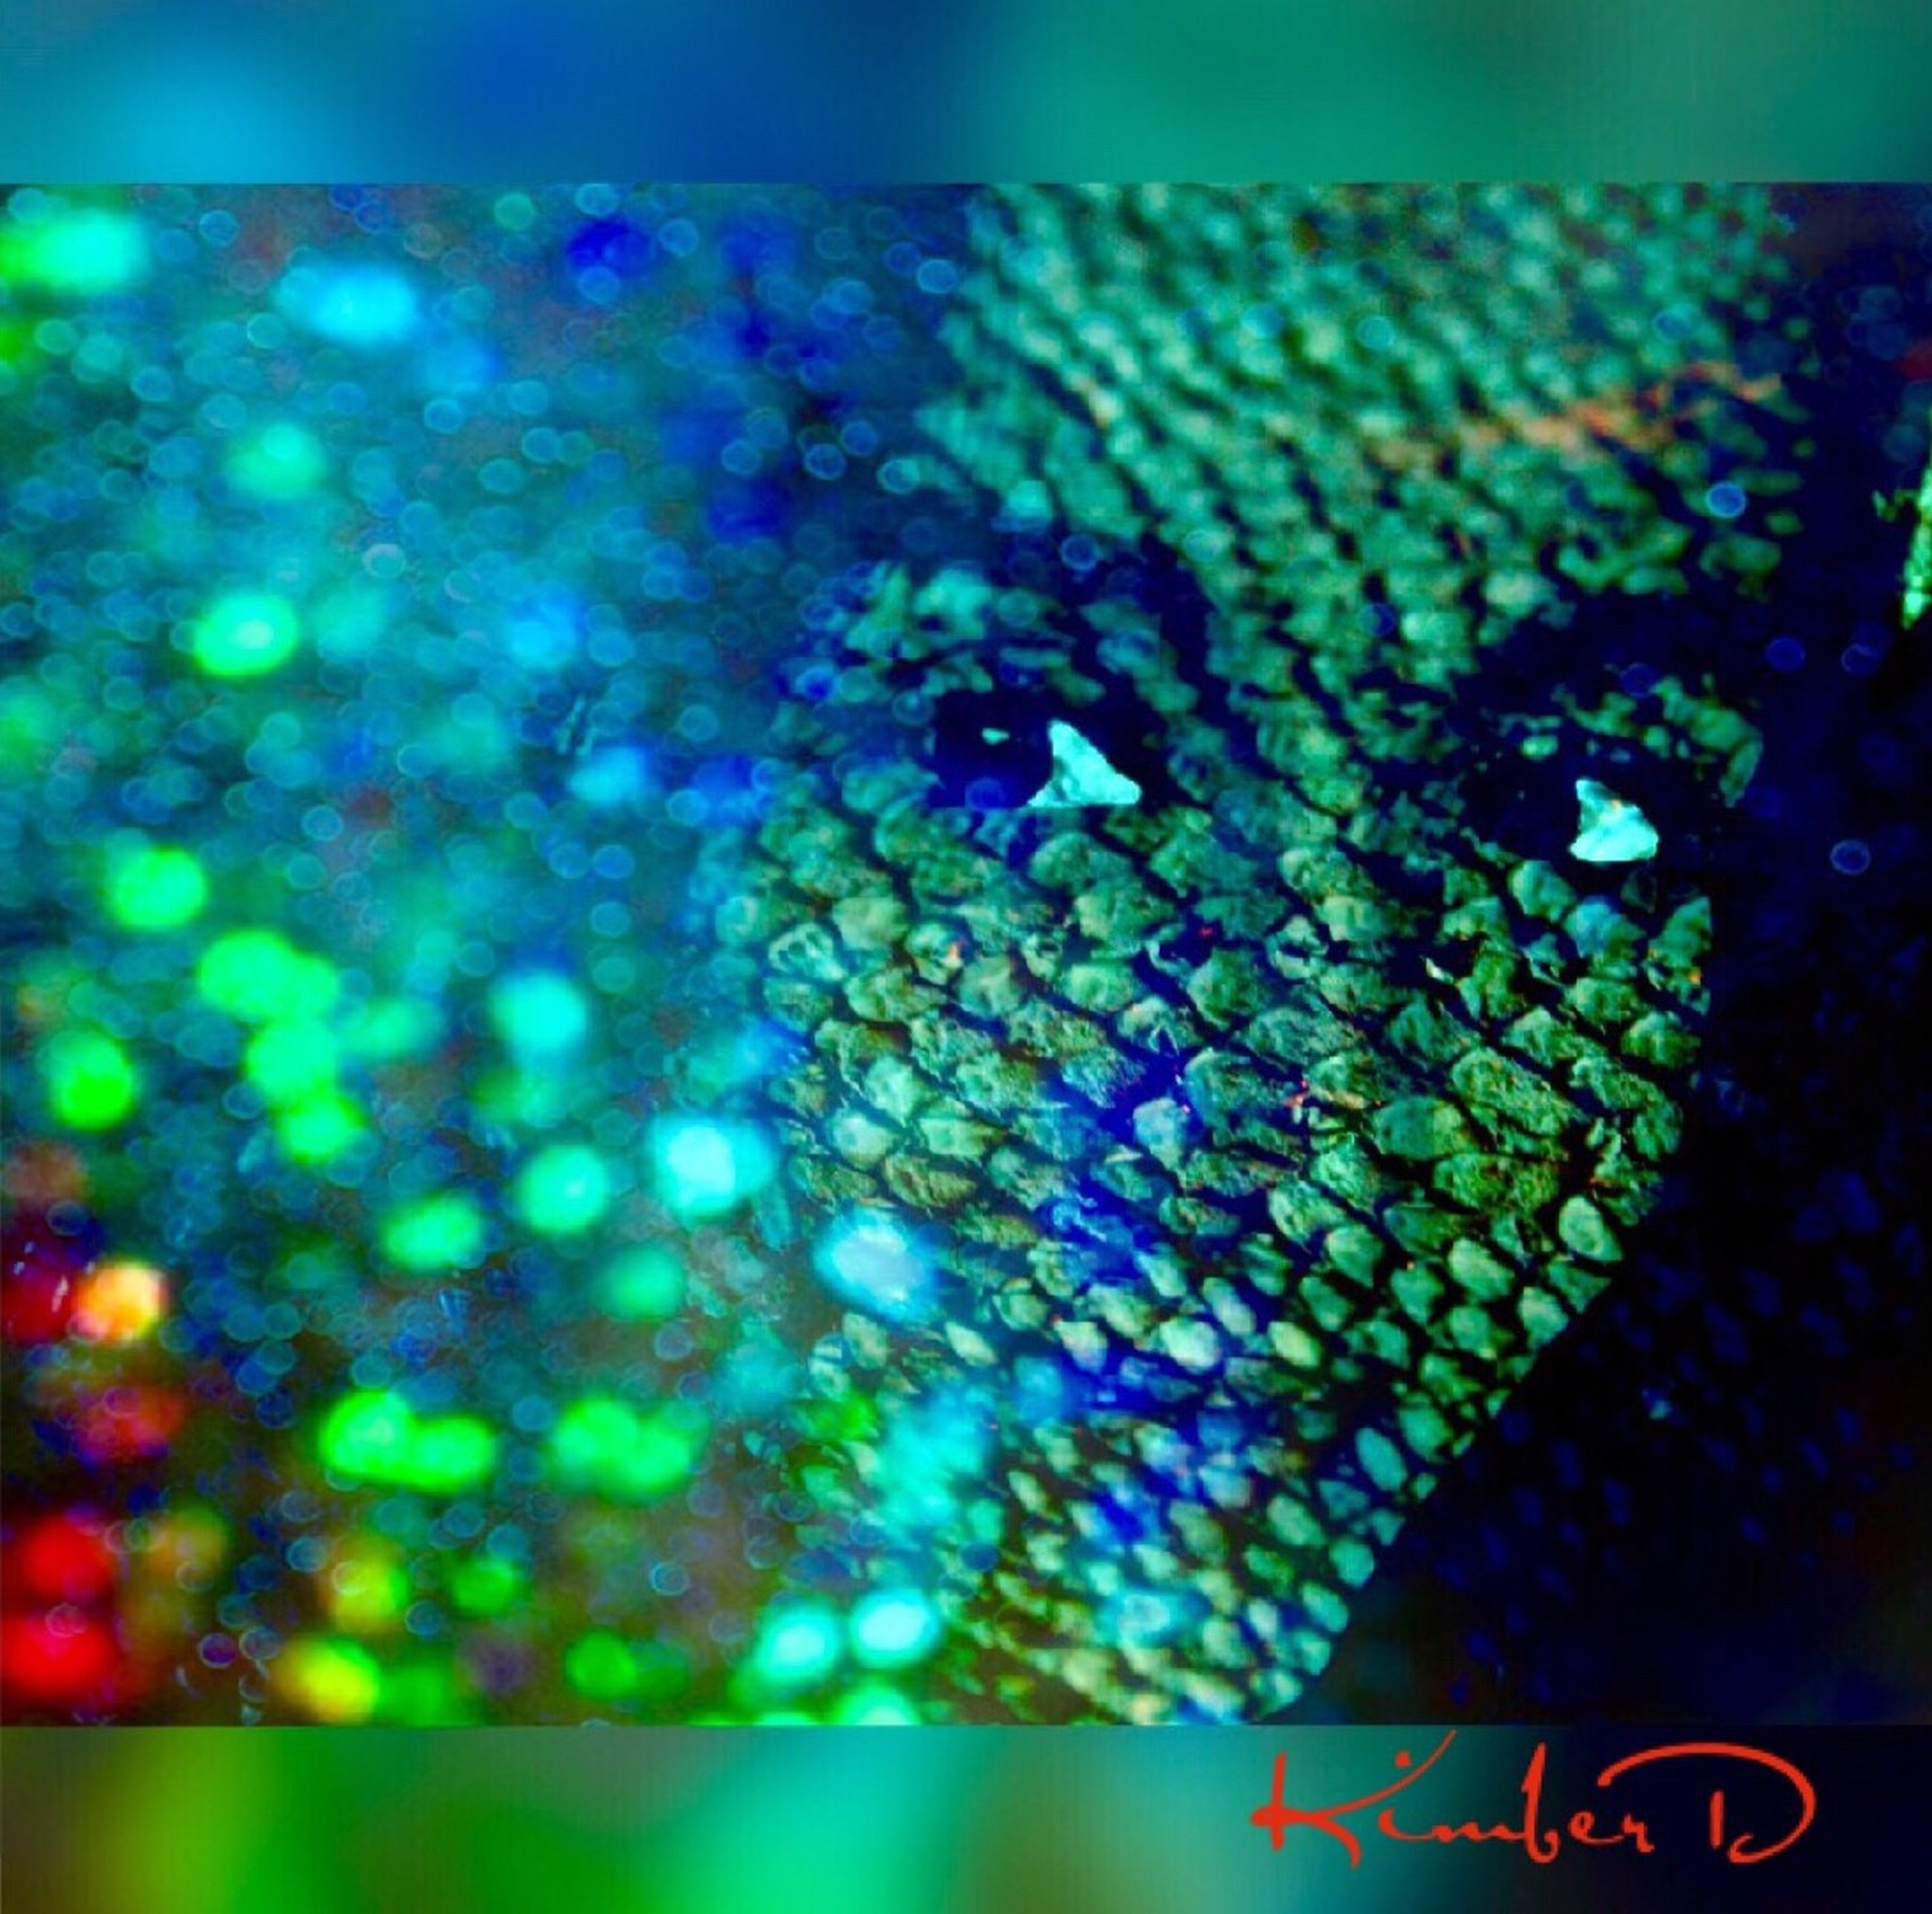 illuminated, water, glowing, night, selective focus, multi colored, vibrant color, blue, decoration, full frame